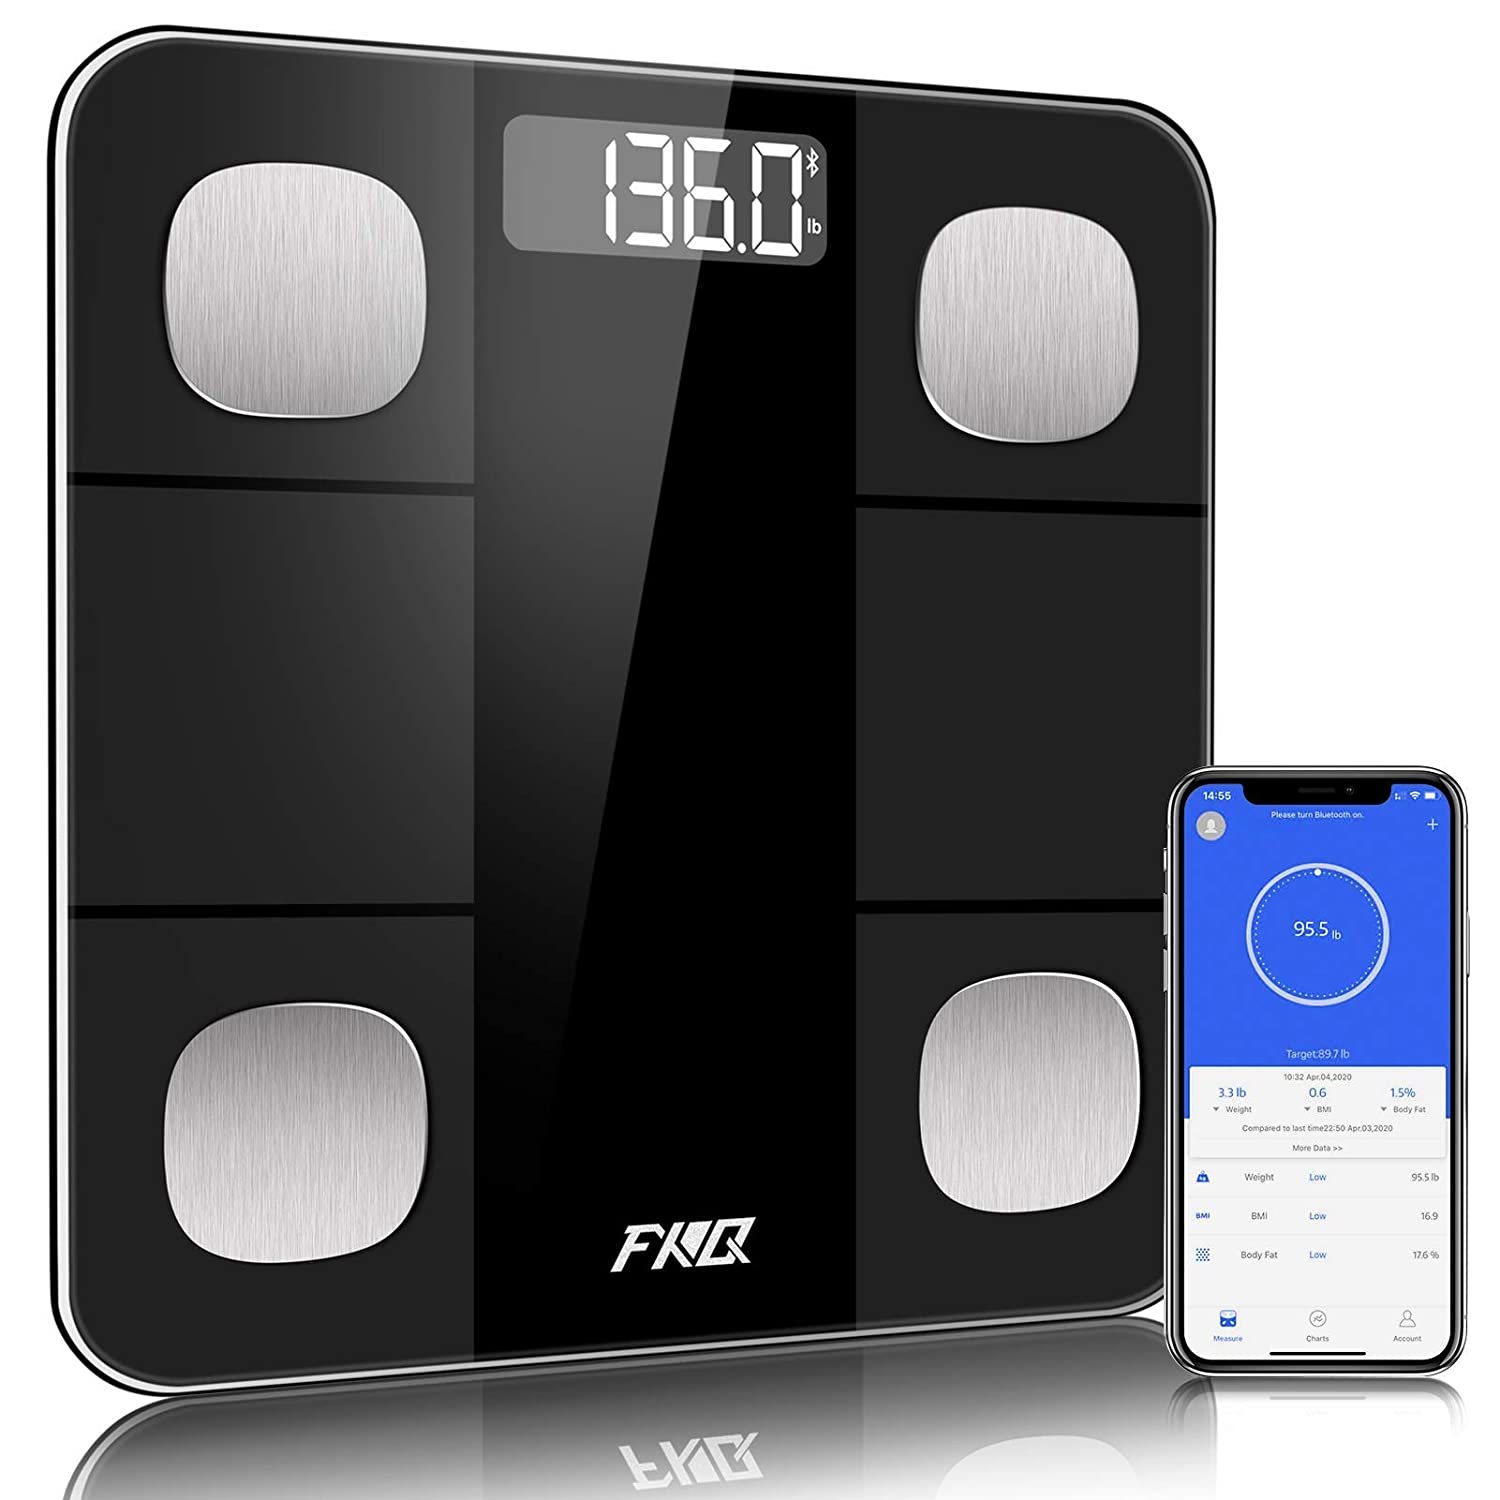 Scales for Body Weight, Bluetooth Body Fat Scale, Digital Bathroom Weight Scale, Smart BMI Scale Body Fat Analyzer Tracks 14 Key Compositions, High Precise Weight Measure Scale with Smartphone App